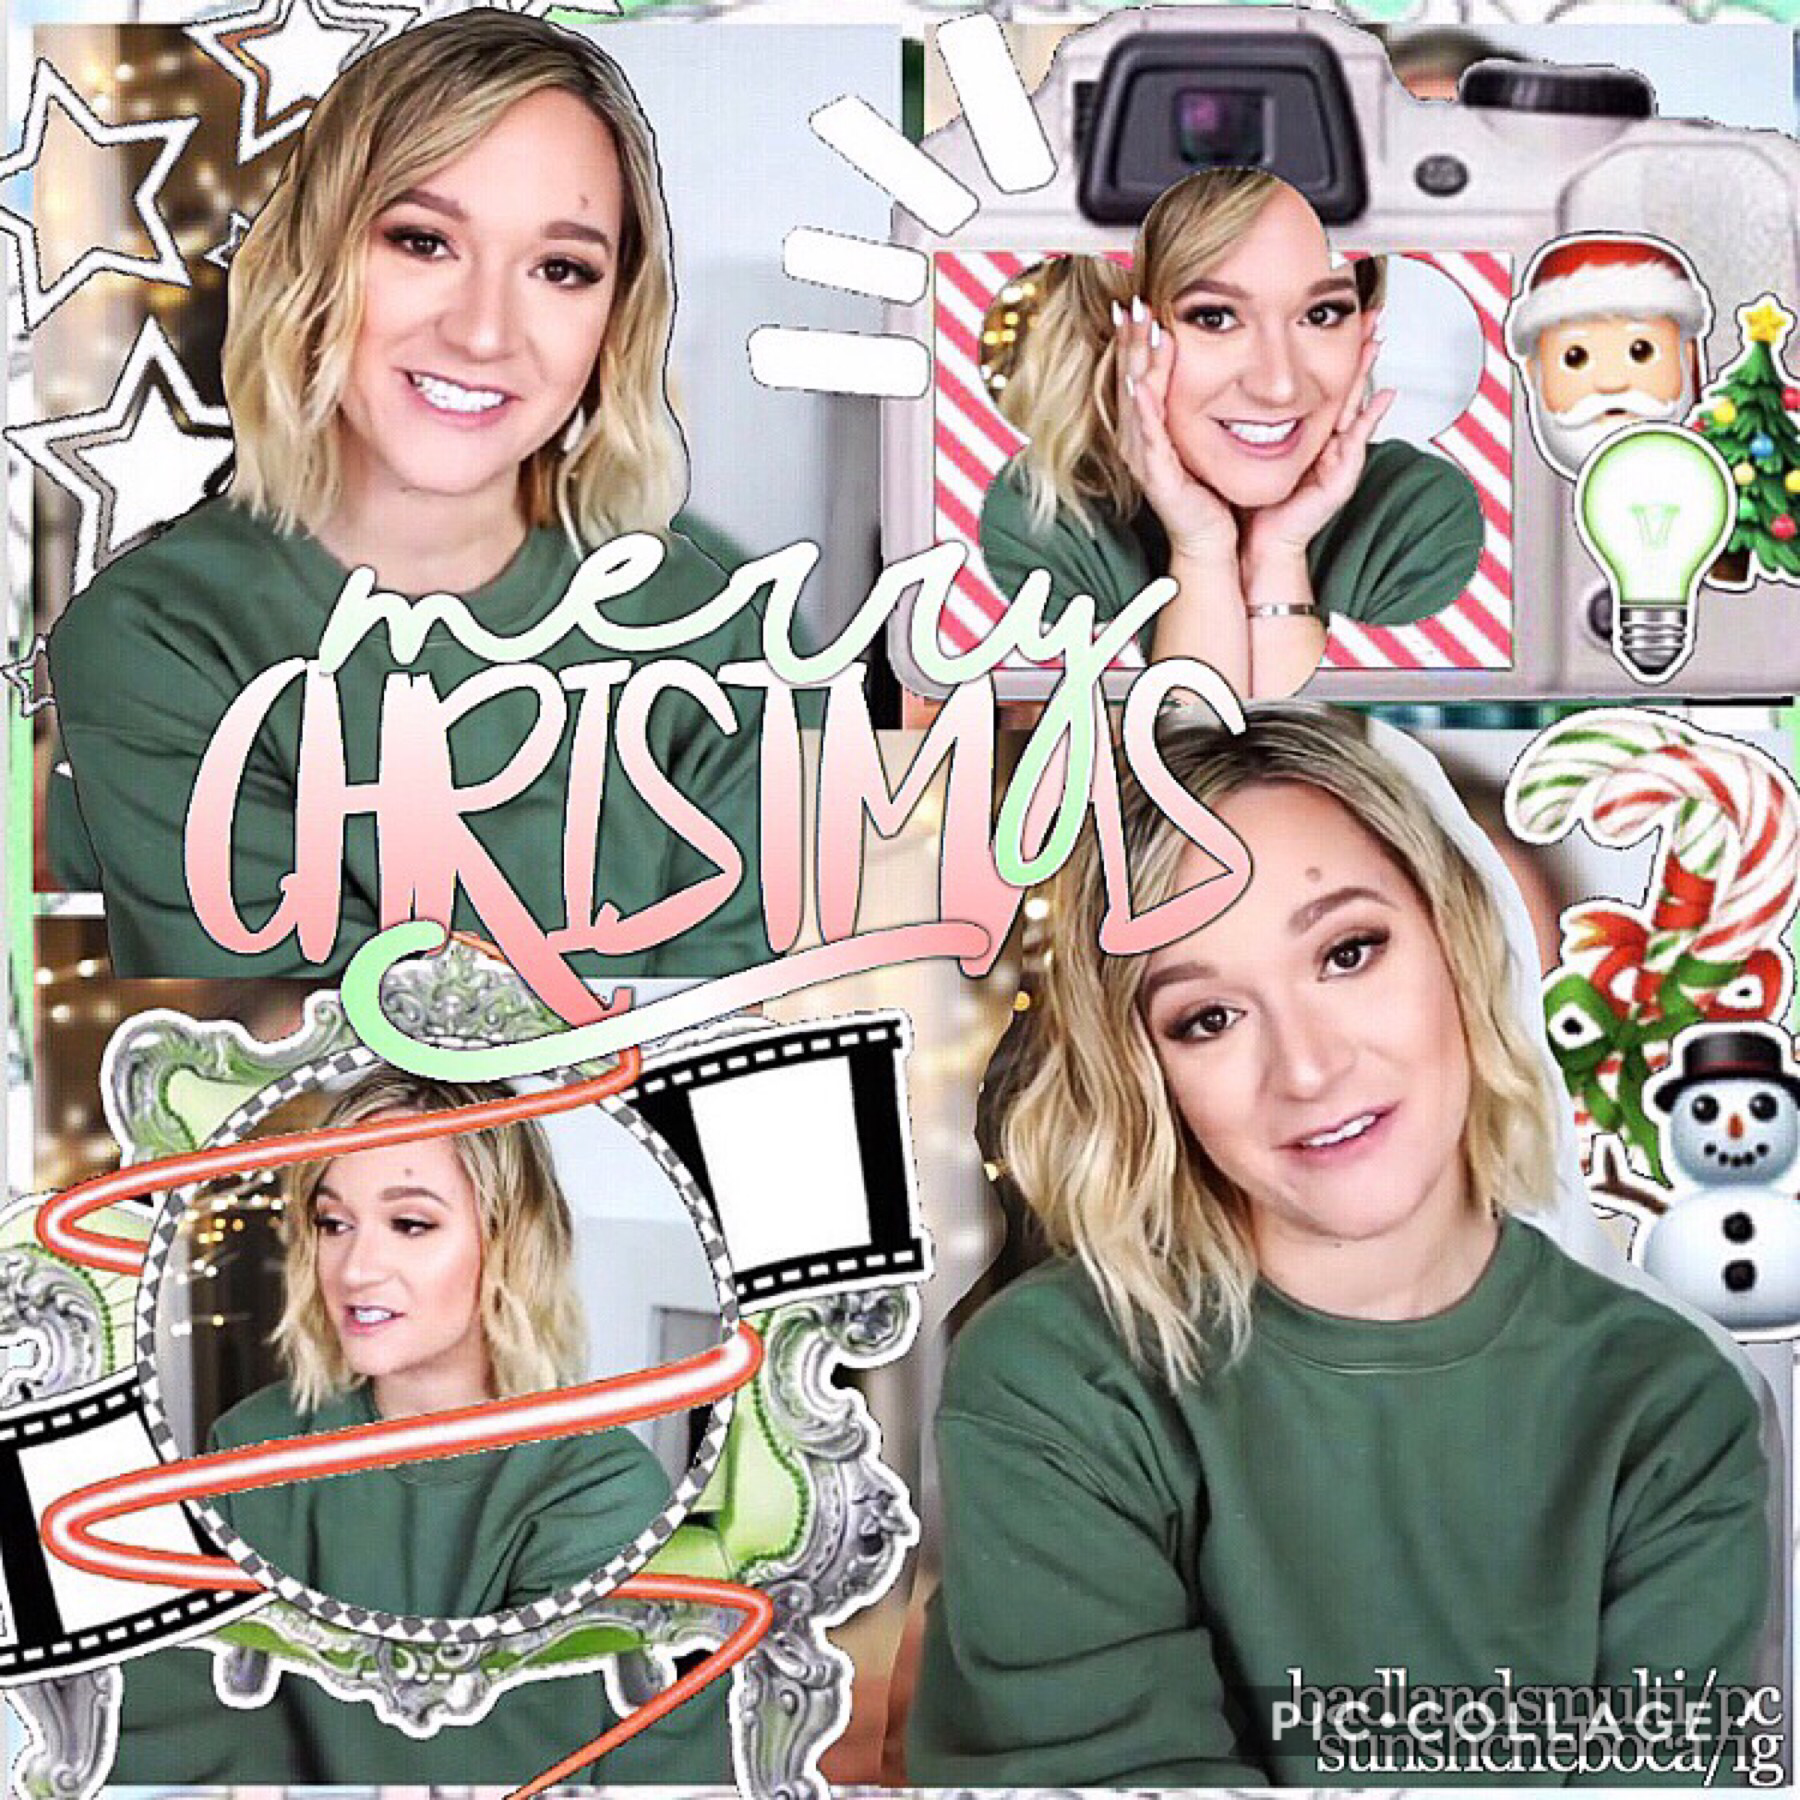 tap 🎄 Merry Christmas, if you celebrate! I hope everyone has a great day, whether or not you celebrate. Lots of love 💜  QOTD: what did you get for Christmas (or your holiday)? AOTD: a laptop hehe